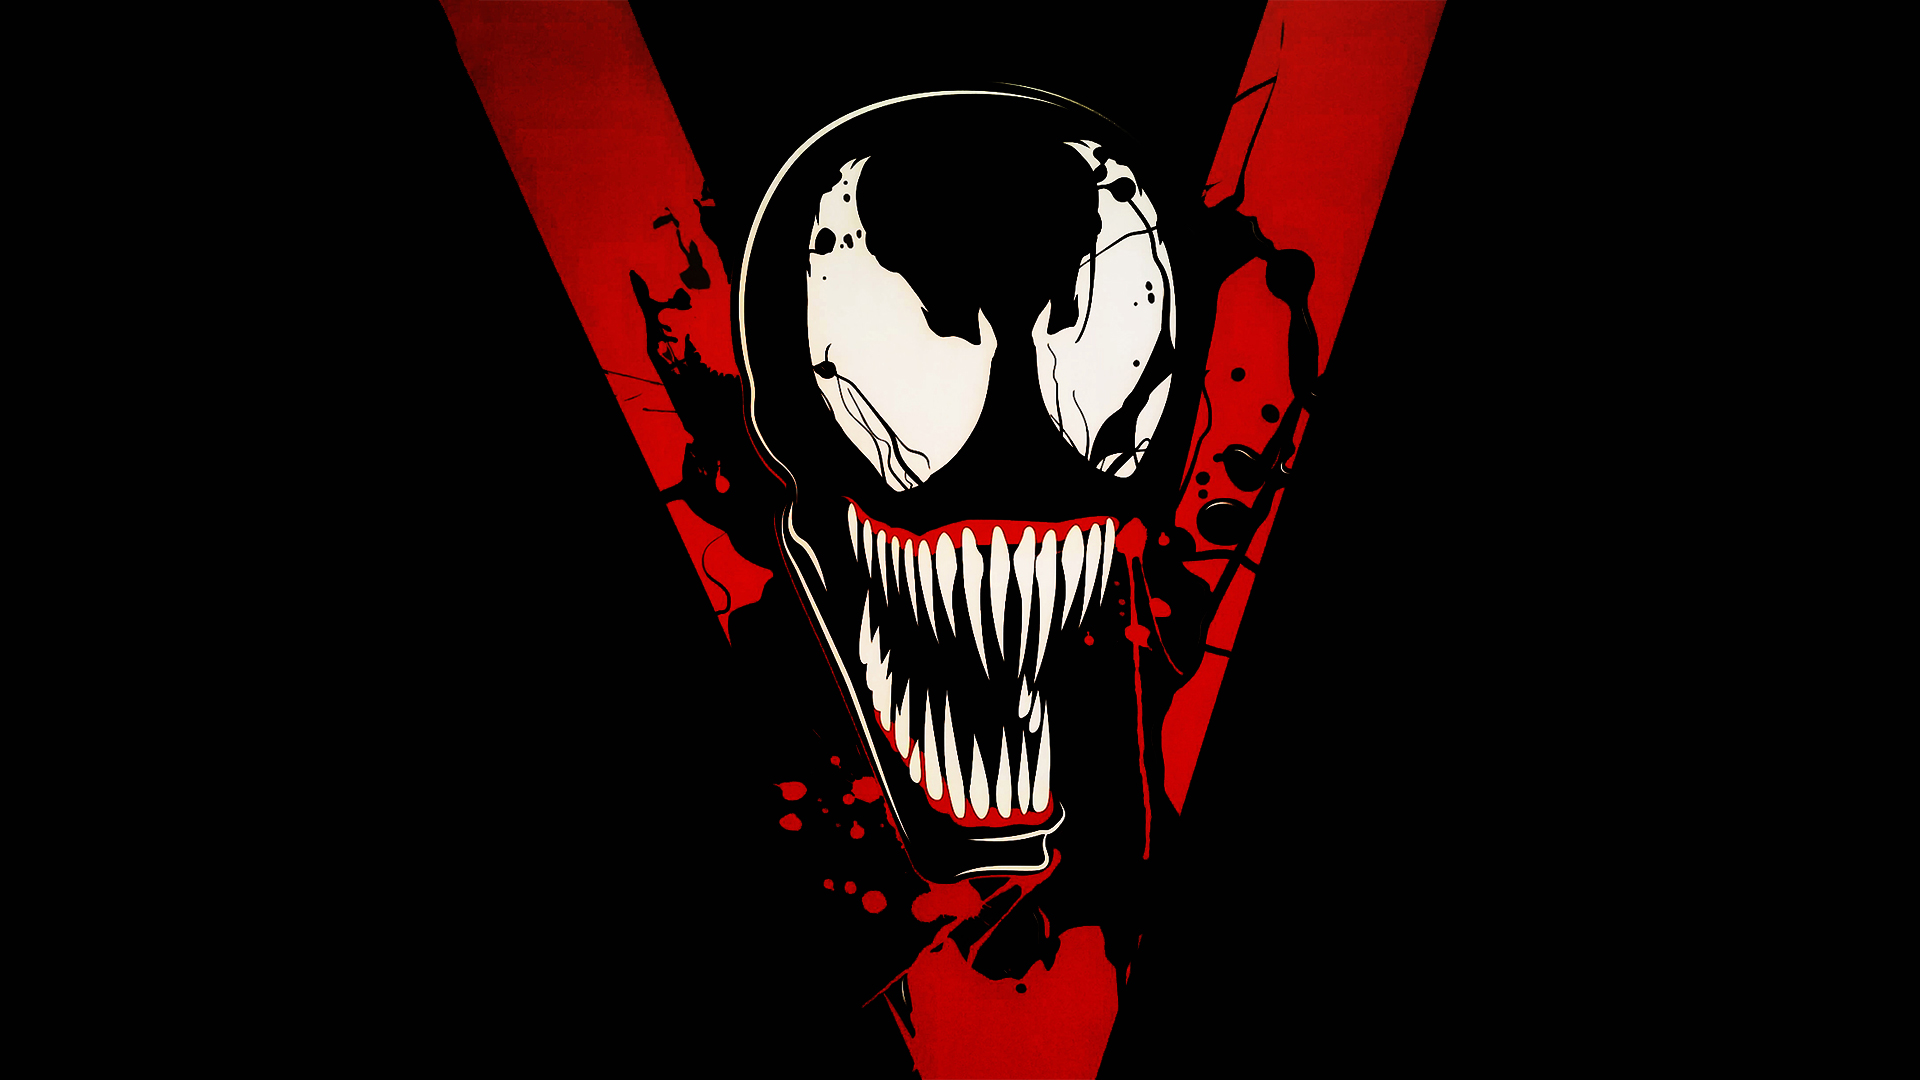 1920x1080 venom 2018 movie laptop full hd 1080p hd 4k - Venom hd wallpaper android ...